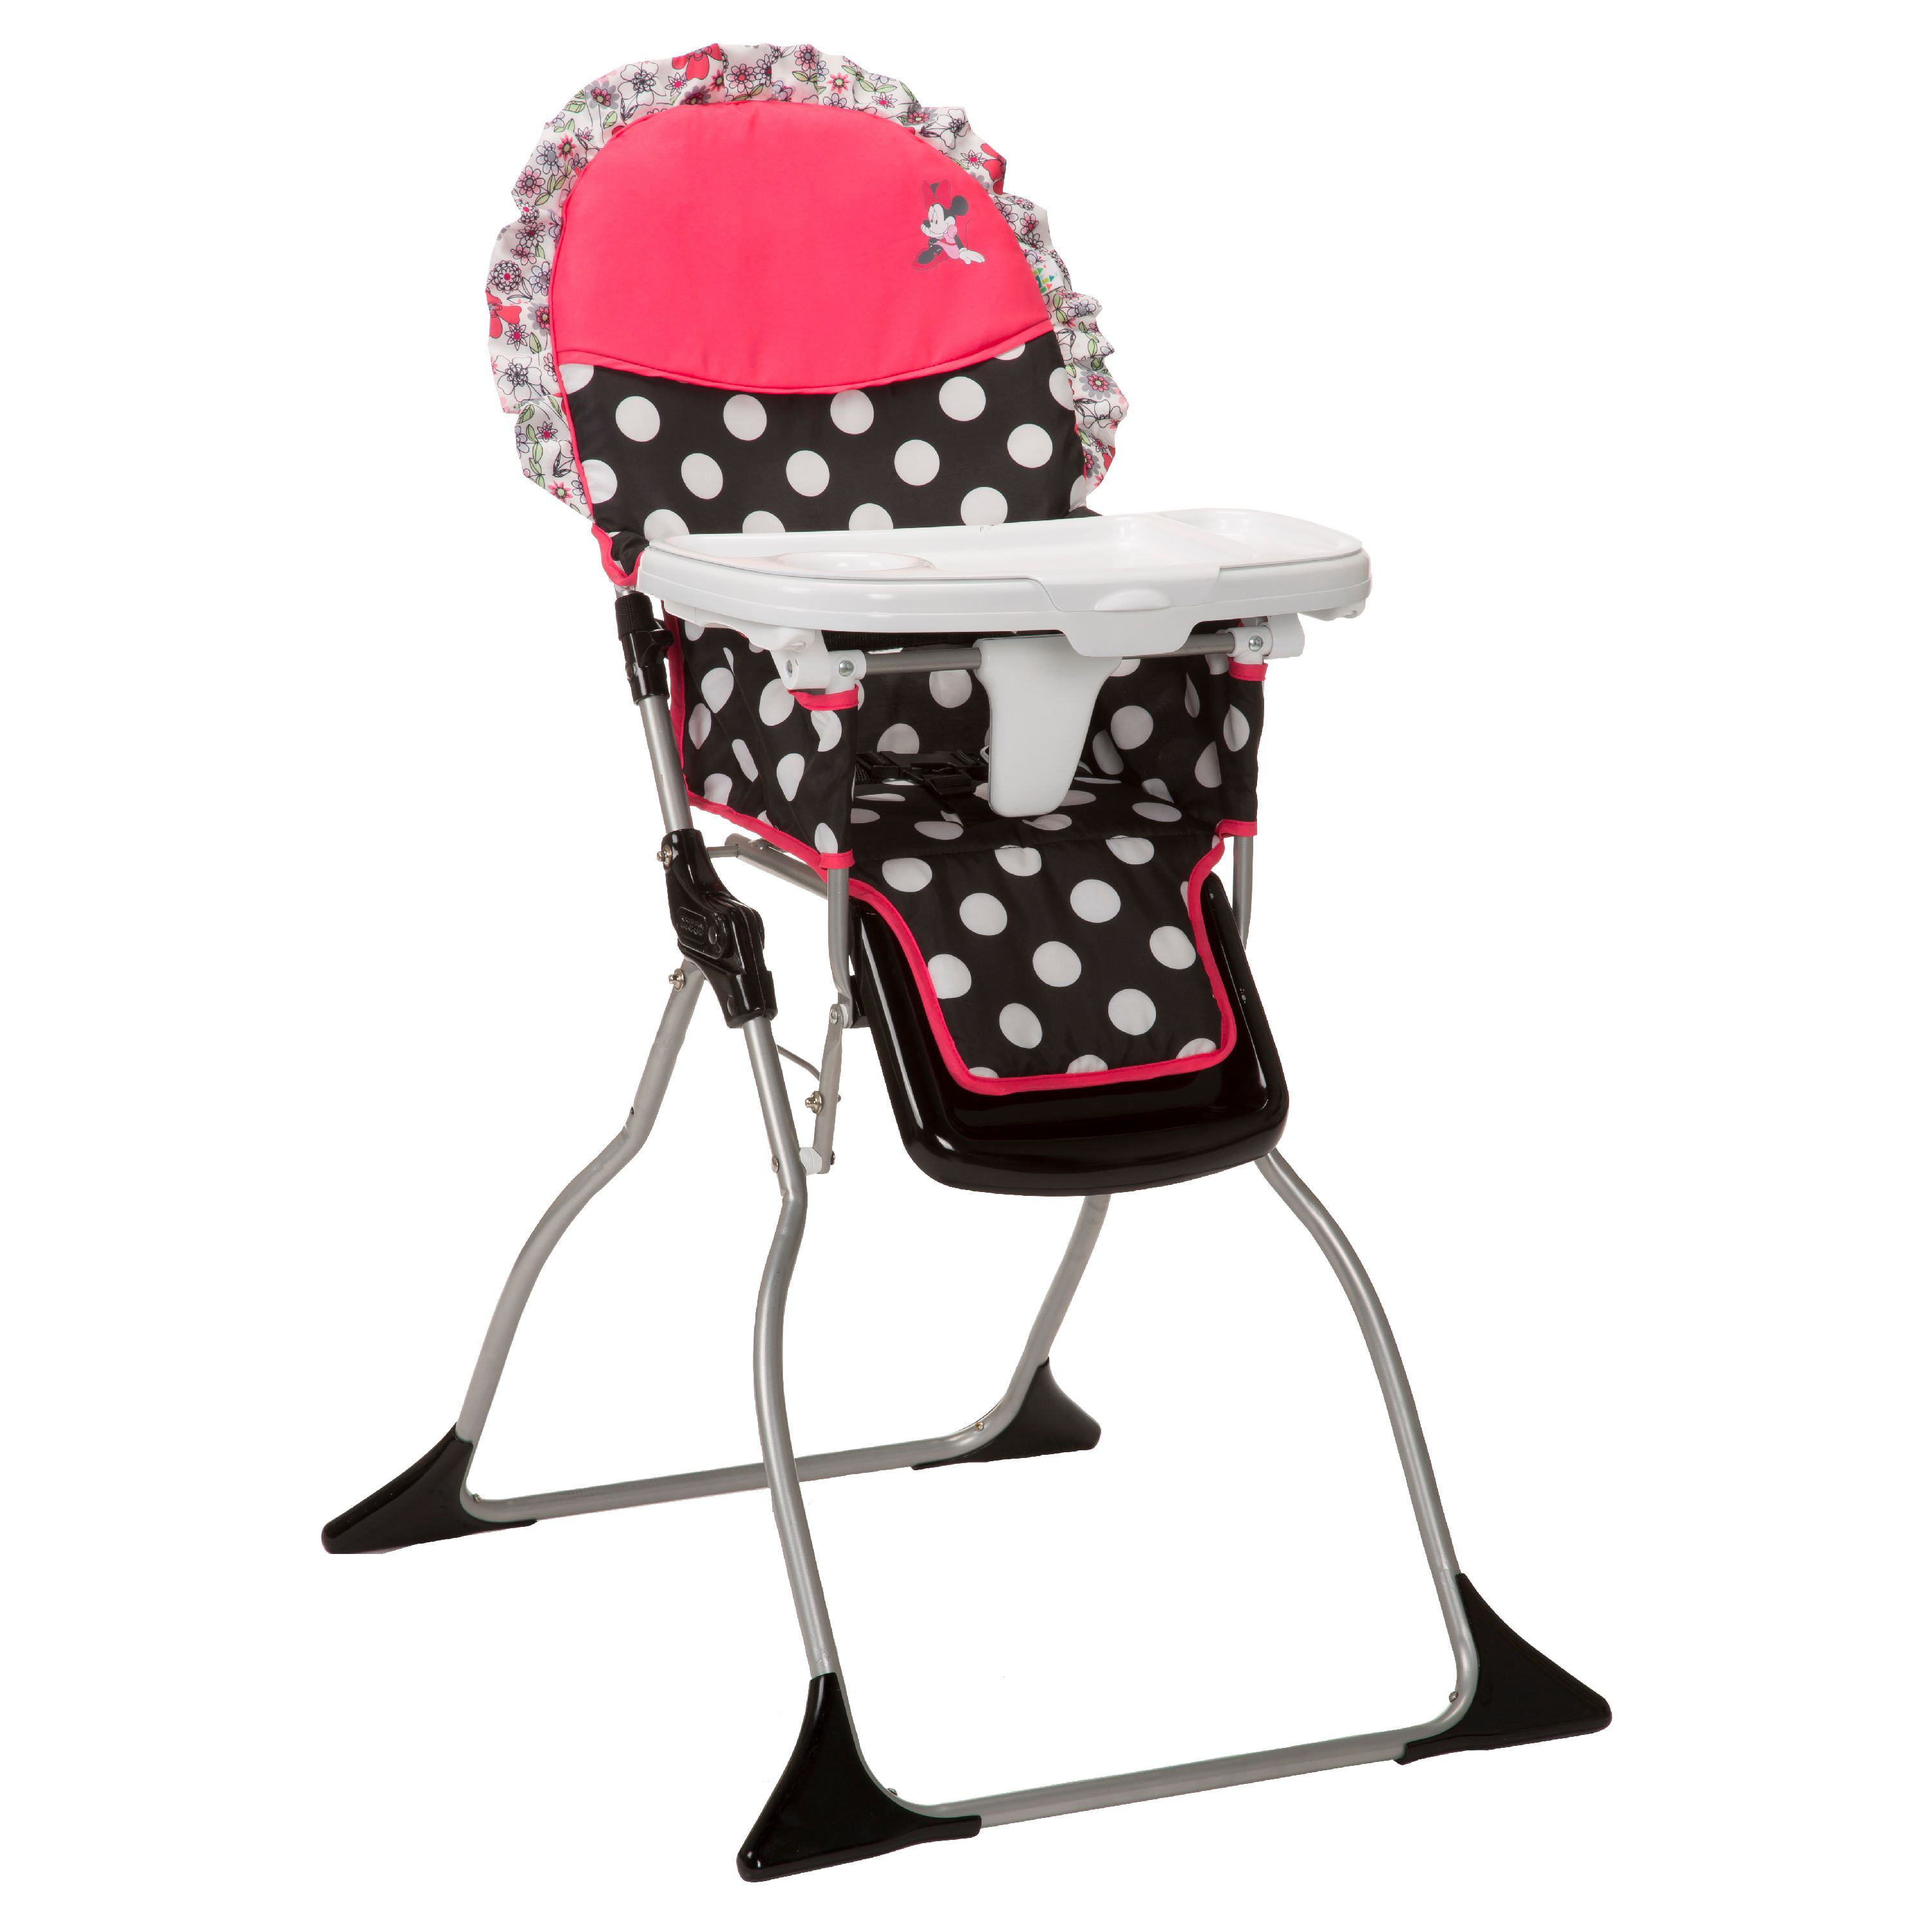 Disney Baby Simple Fold Plus High Chair, Minnie Coral Flowers   Walmart.com